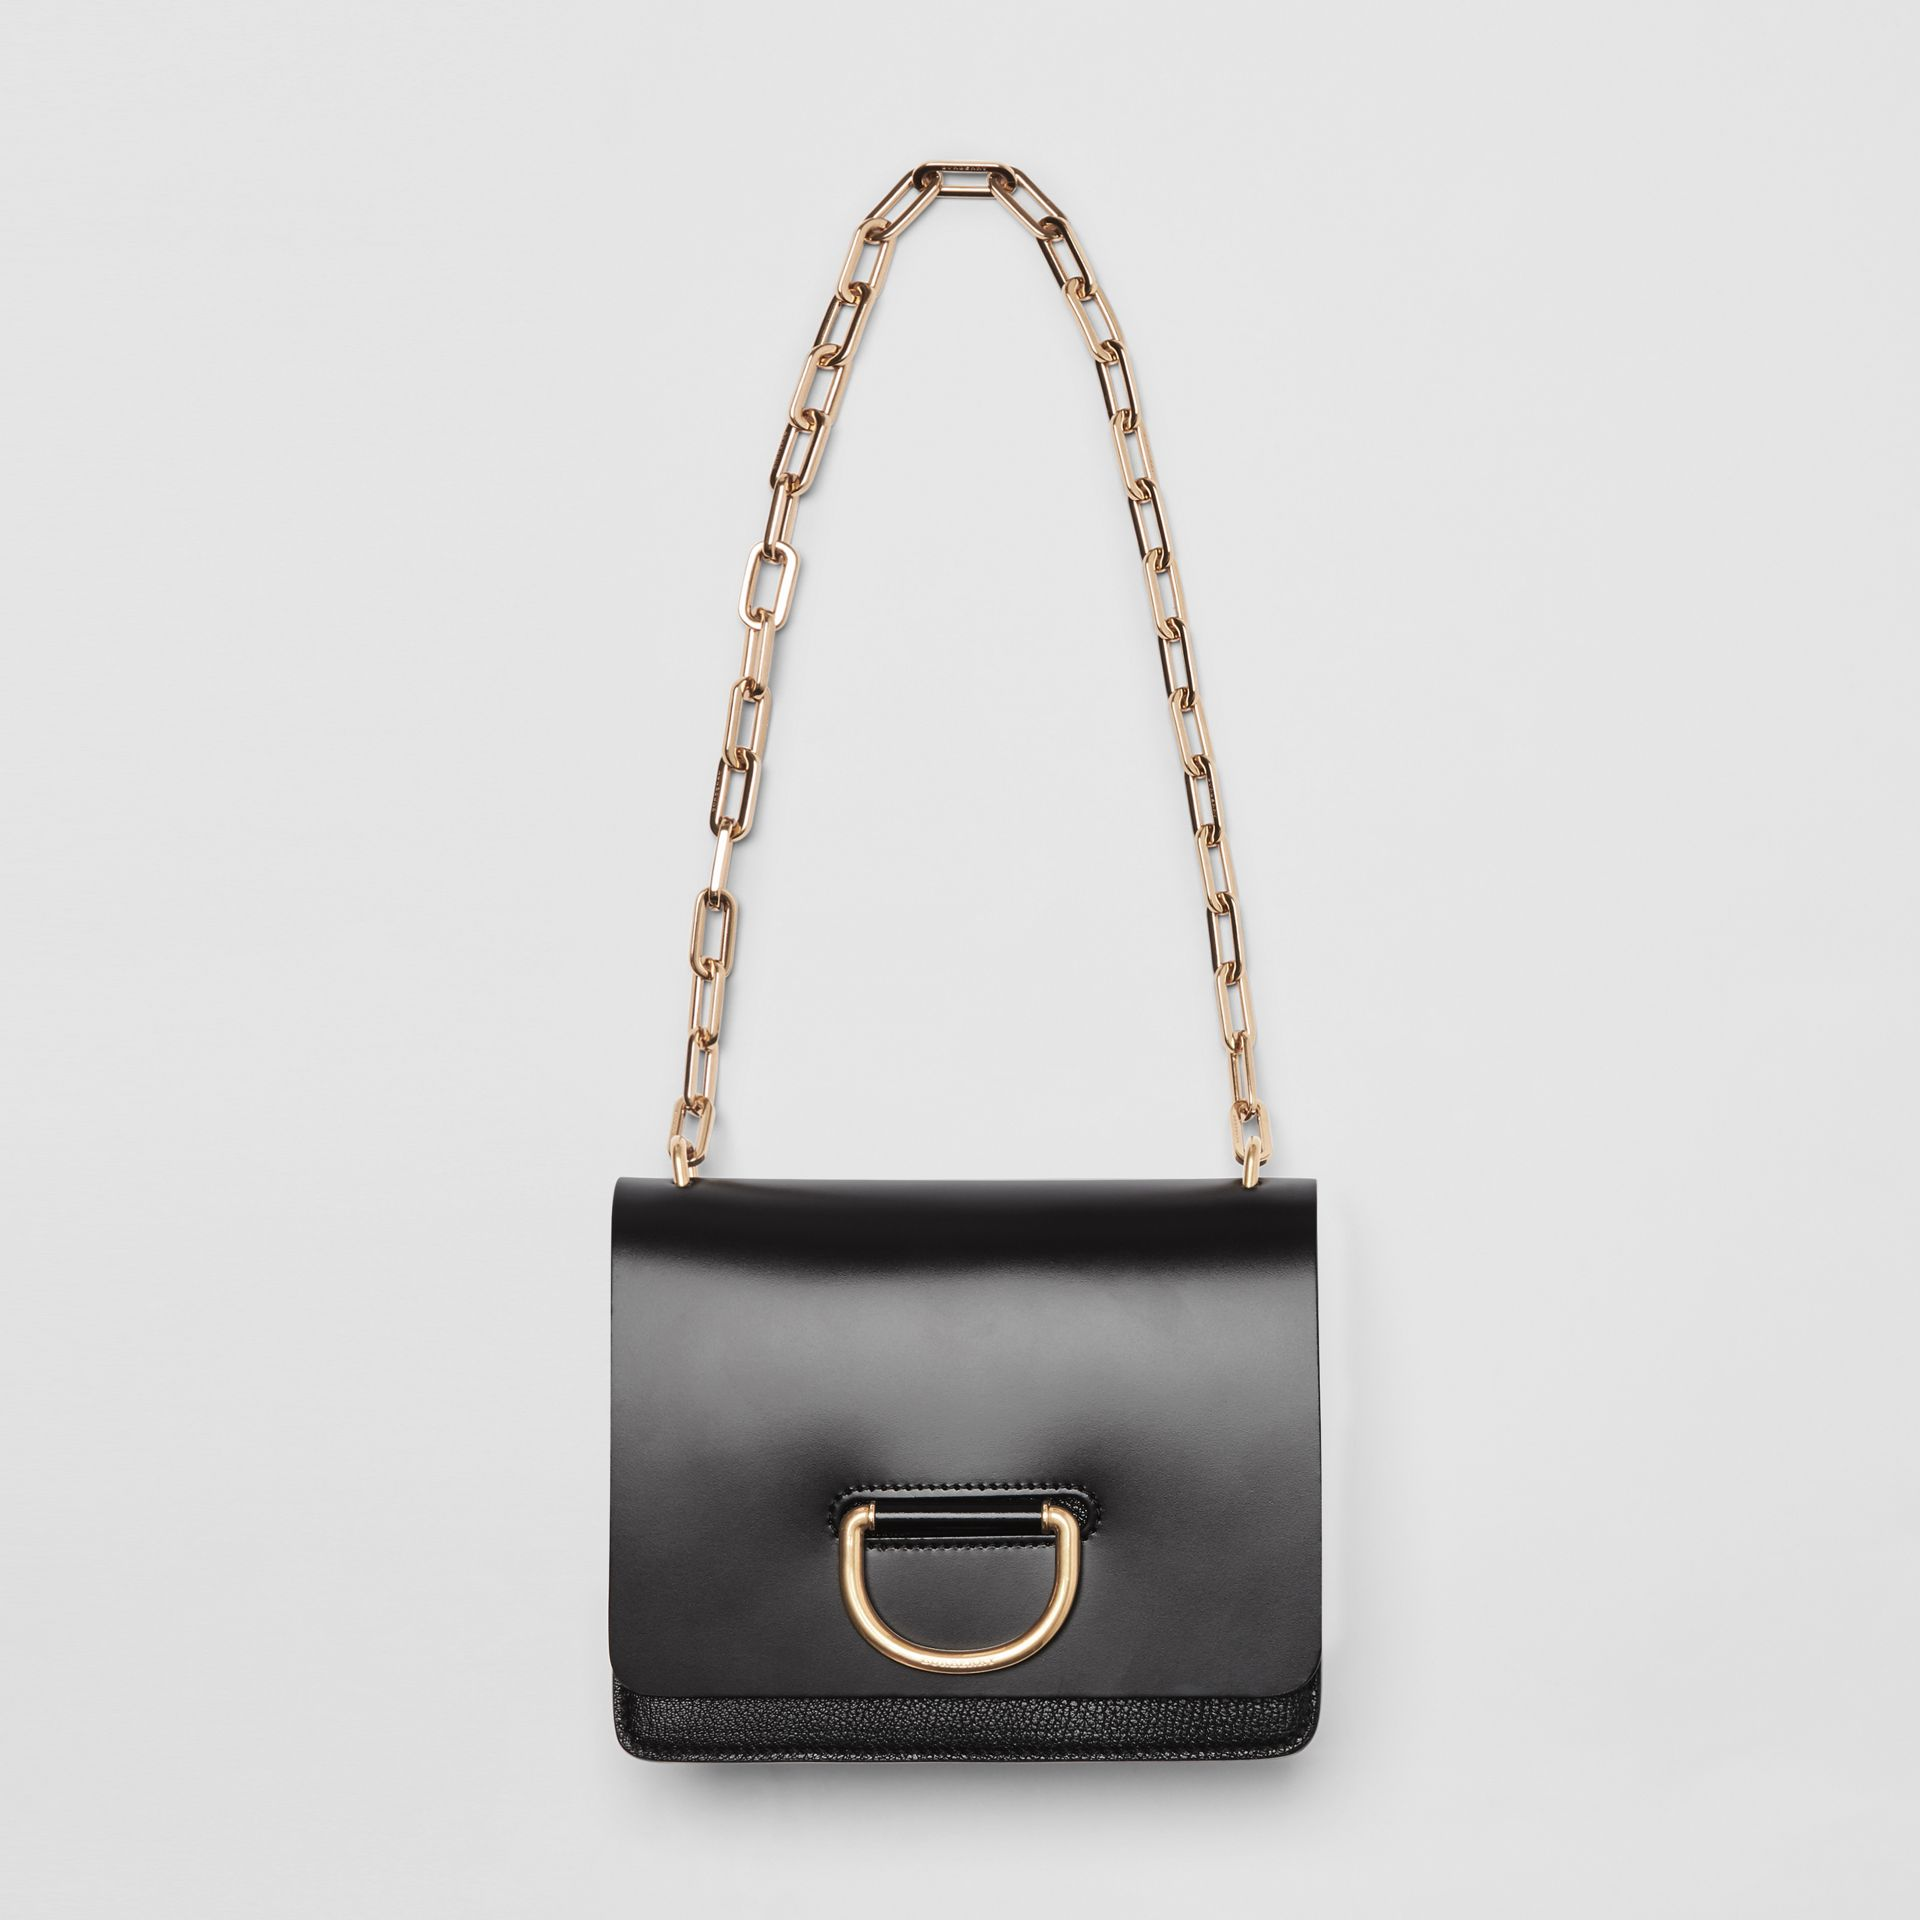 Petit sac The D-ring en cuir (Noir) - Femme | Burberry - photo de la galerie 4